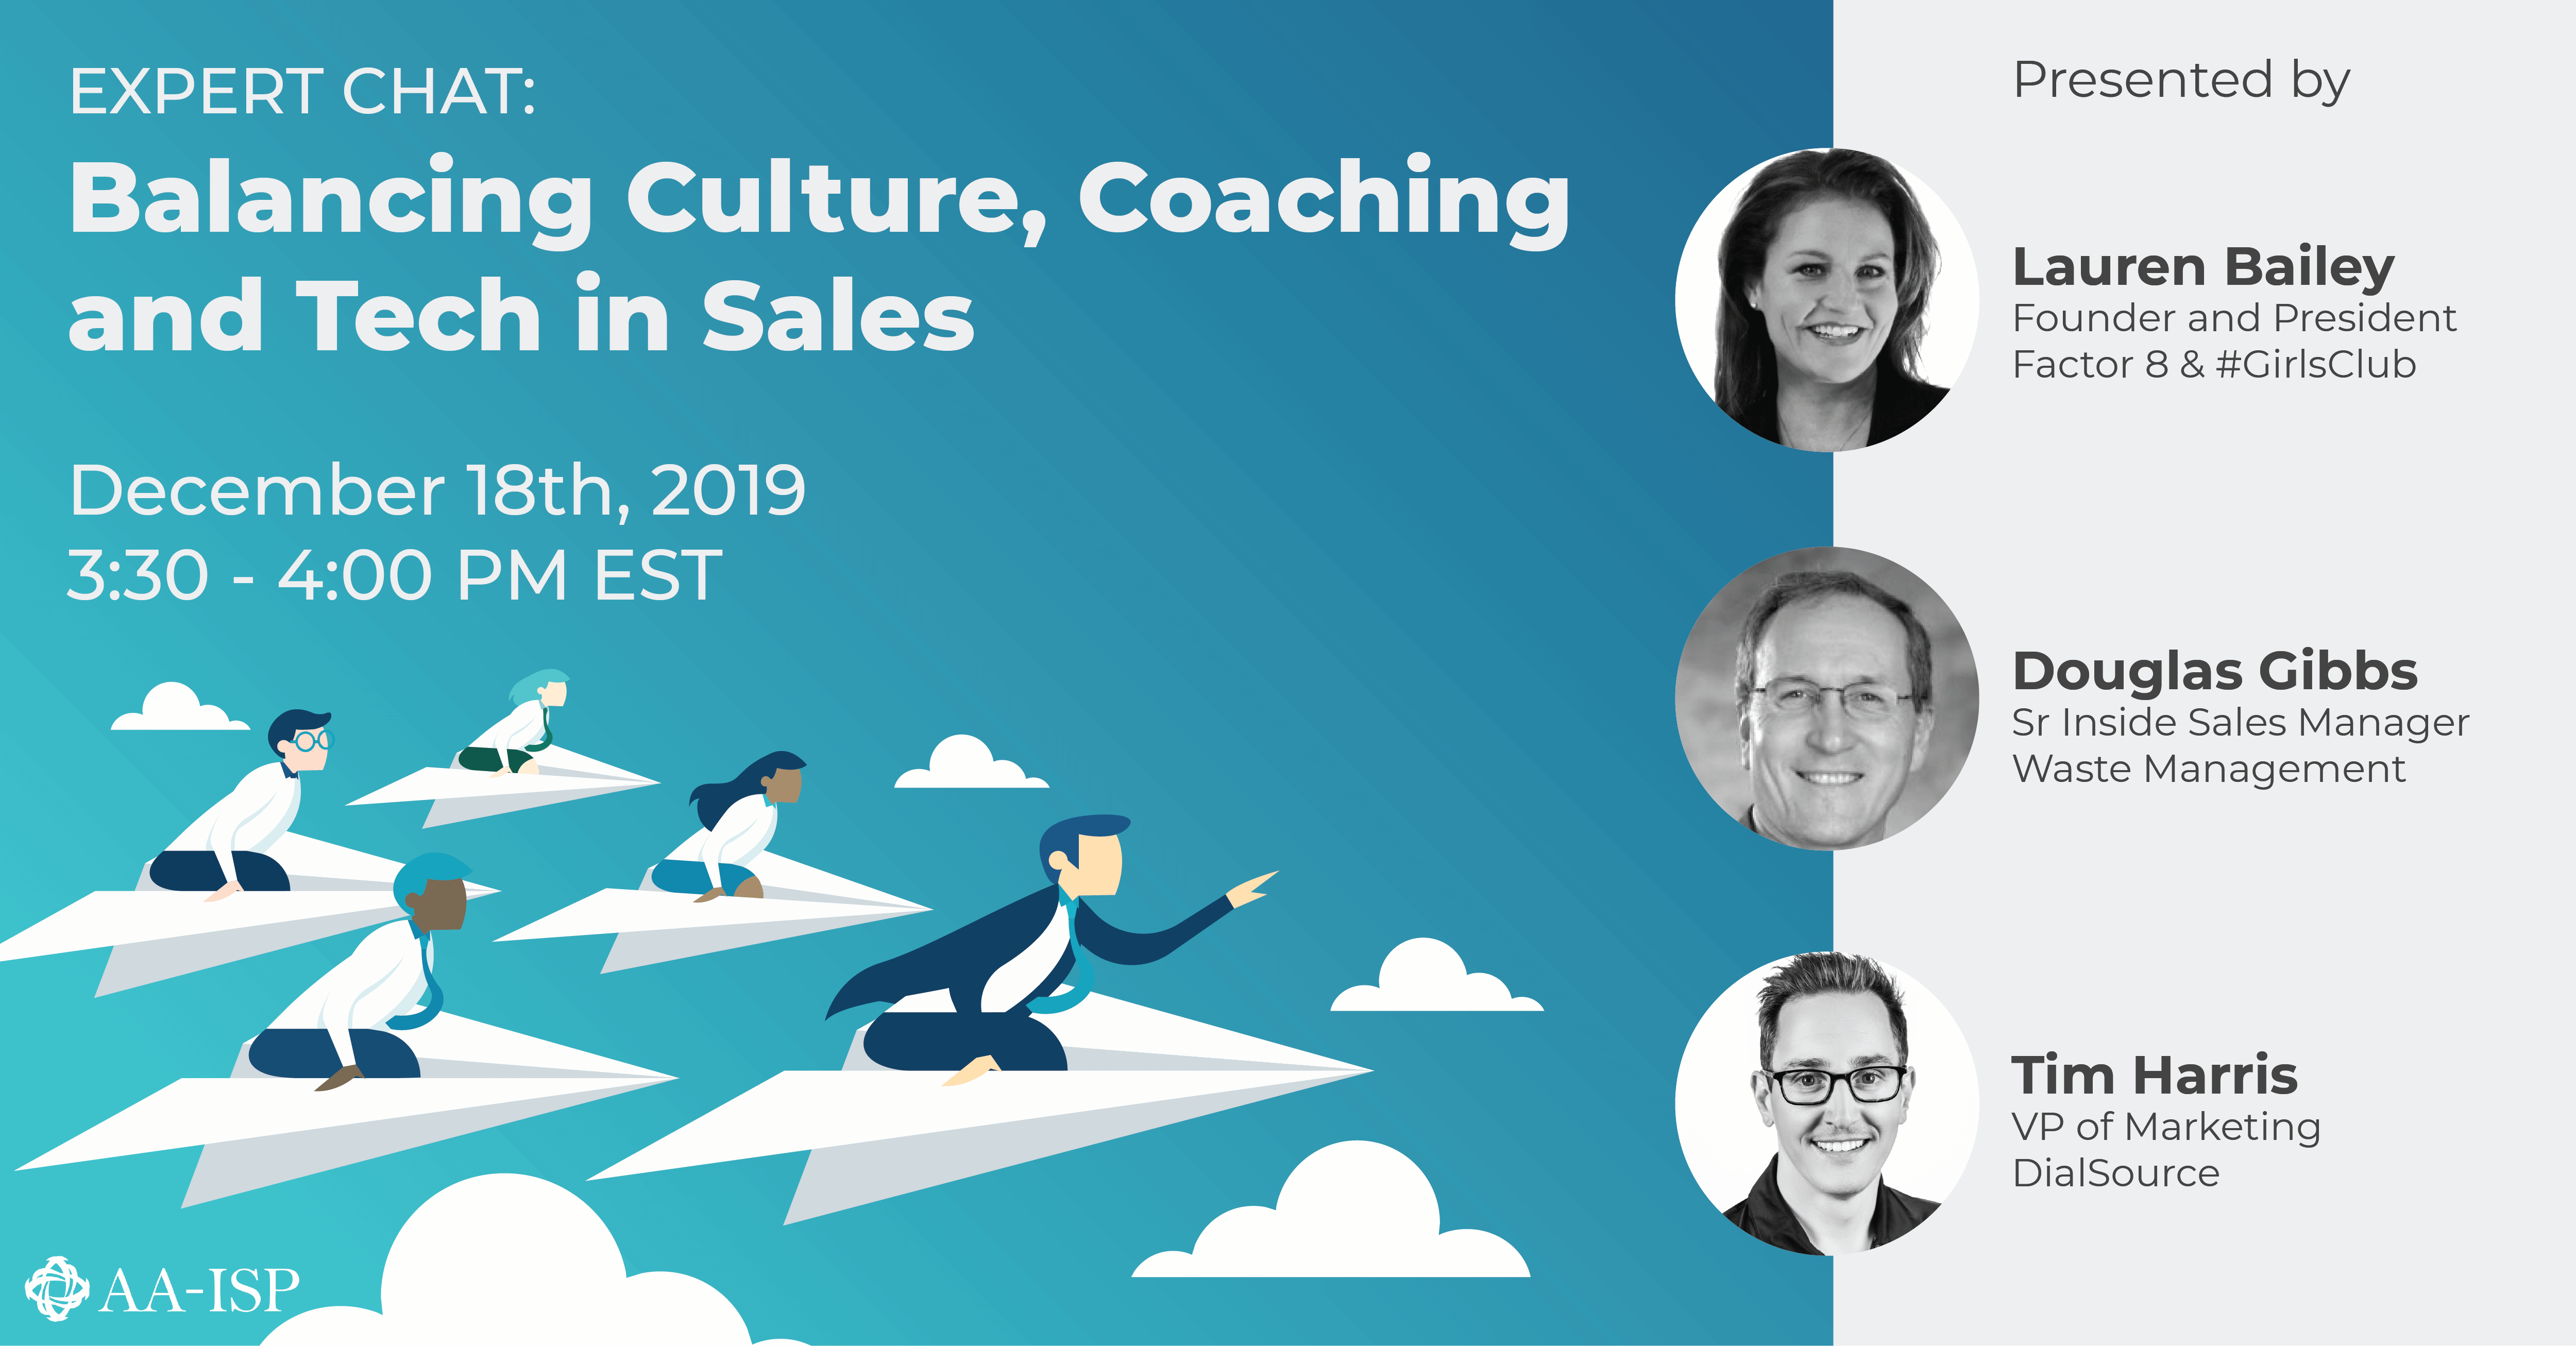 Expert Chat: Balancing Culture, Coaching, and Tech in Sales